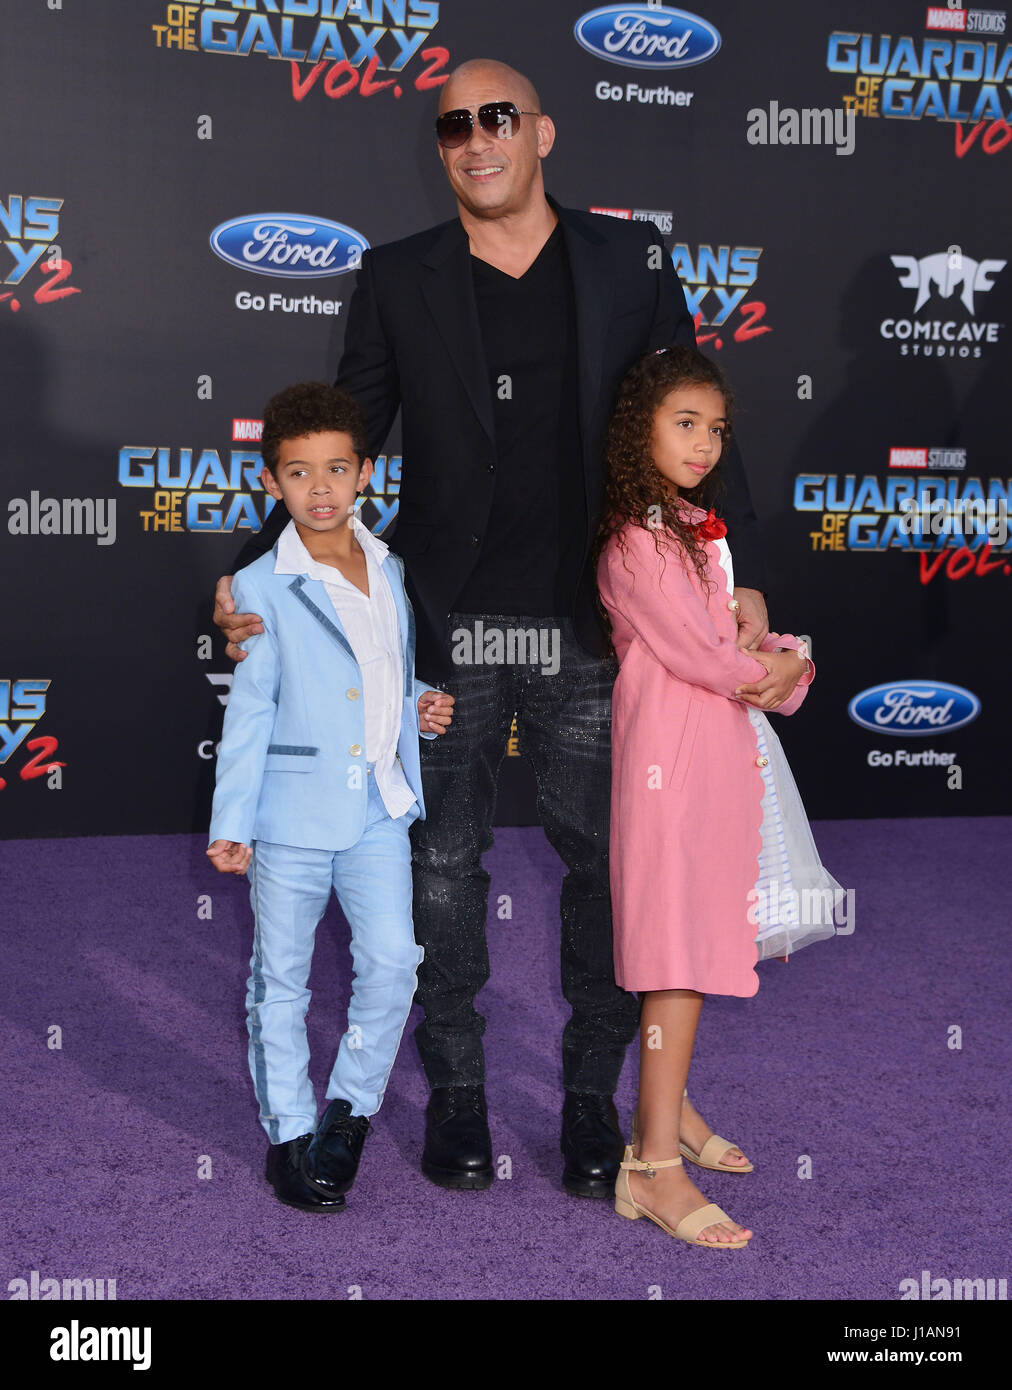 https://c8.alamy.com/comp/J1AN91/los-angeles-usa-18th-apr-2017-vin-diesel-daughter-hania-riley-sinclair-J1AN91.jpg Vin Diesel Daughter 2017